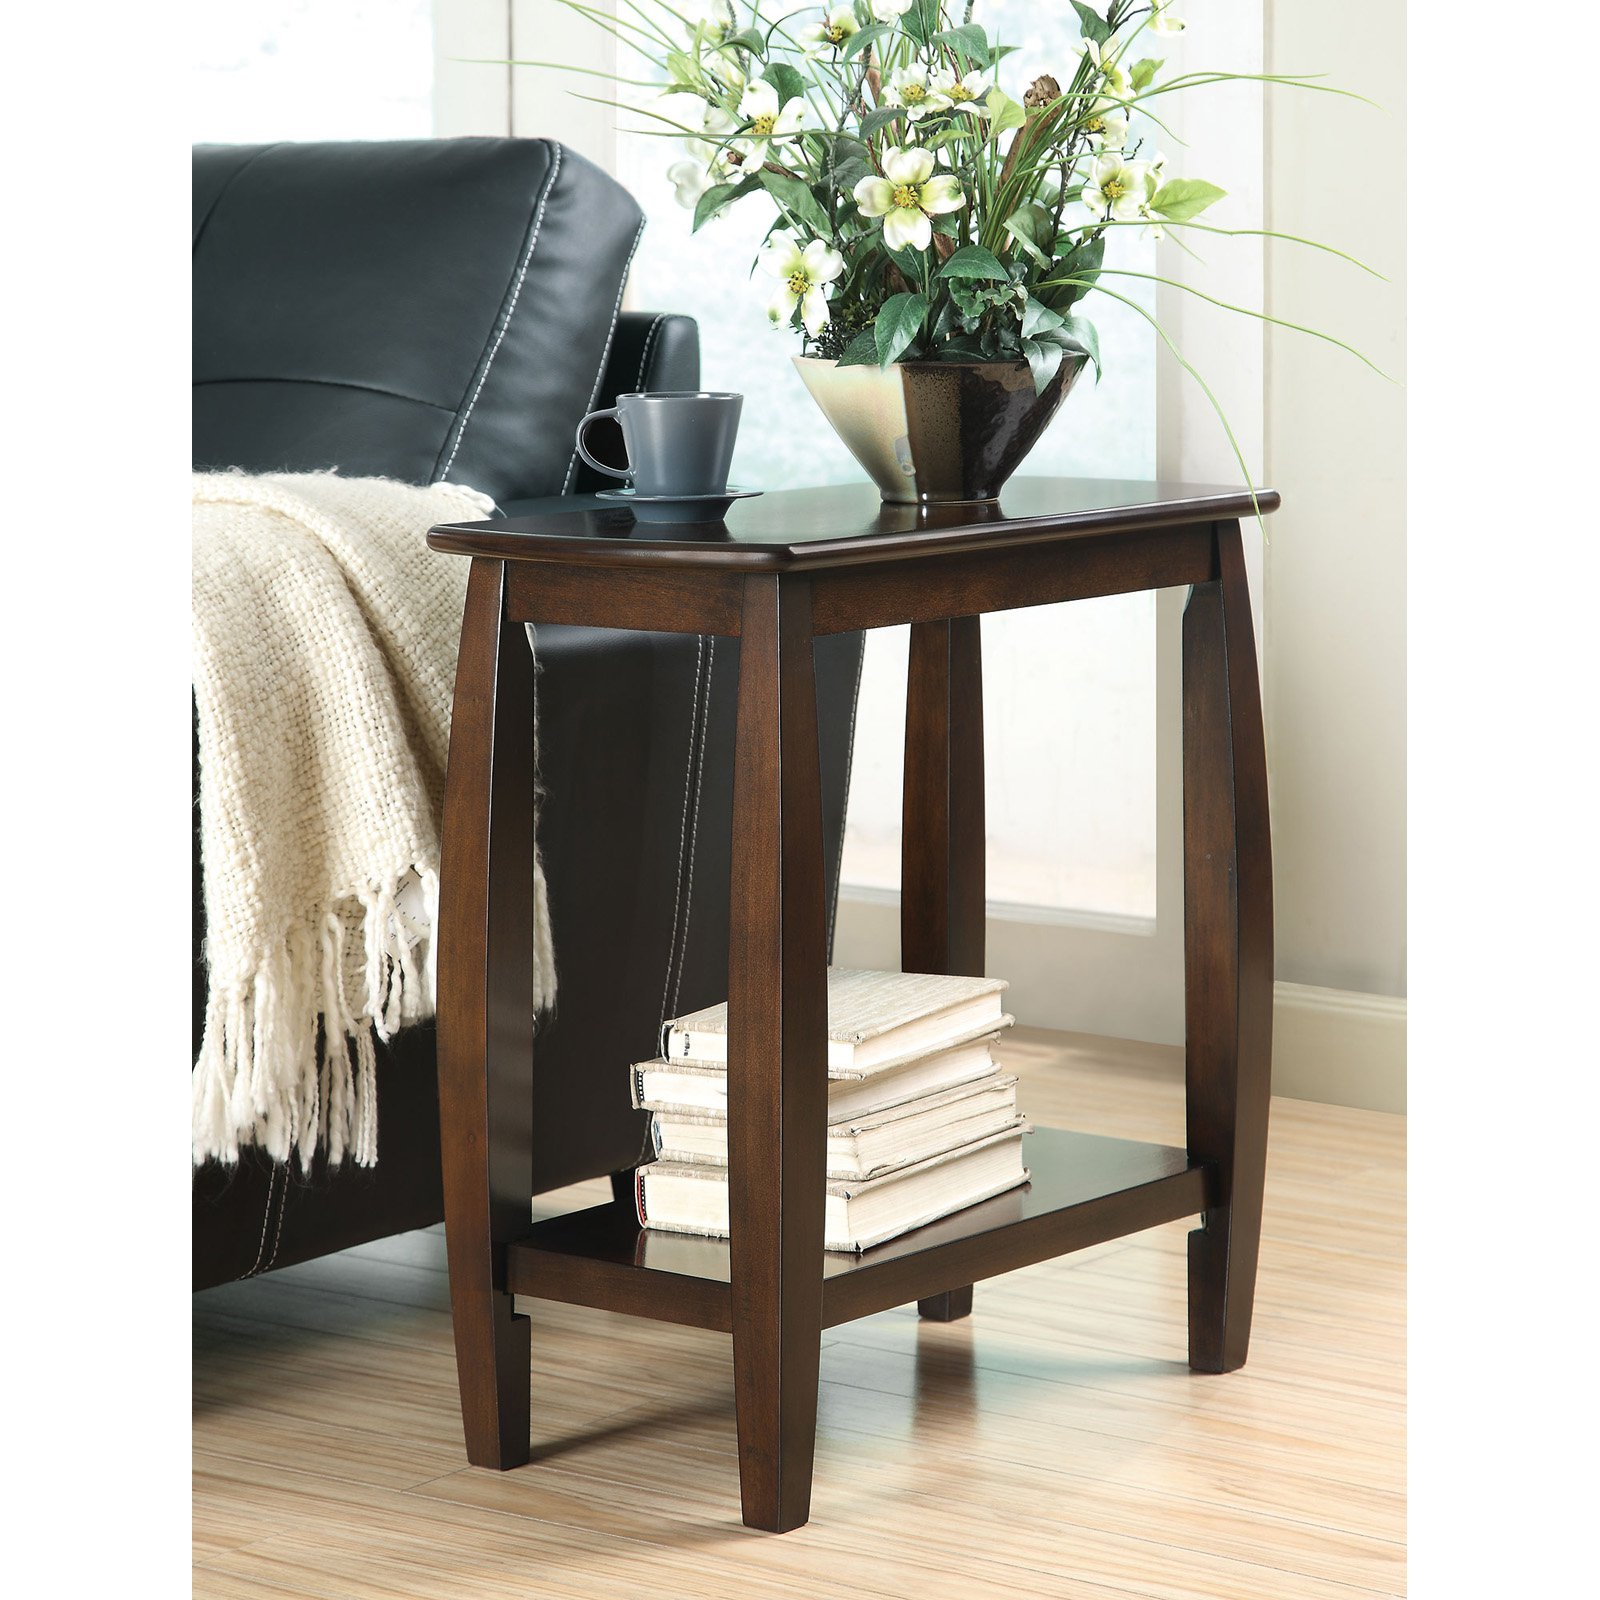 Coaster Furniture Cappuccino Transitional Chairside End Table Com